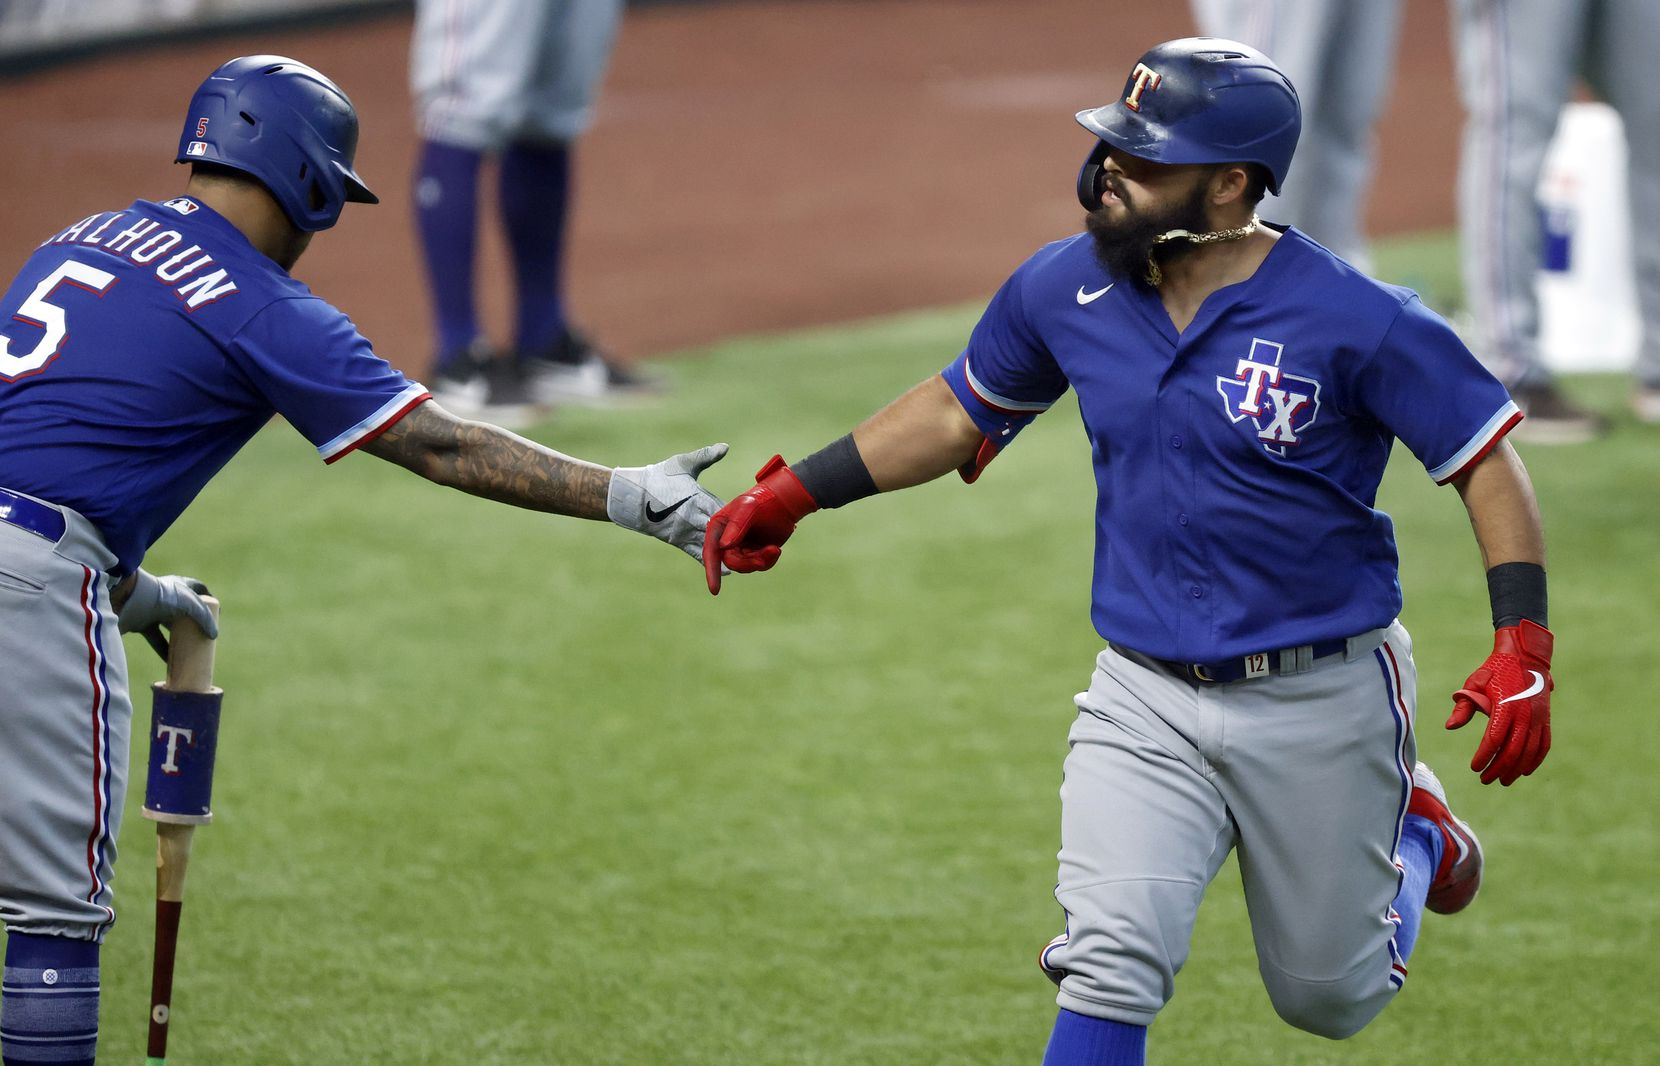 Texas Rangers Rougned Odor (right) is congratulated by teammate Willie Calhoun following his home run during a simulated Summer Camp game at Globe Life Field in Arlington, Texas, Thursday, July 9, 2020. (Tom Fox/The Dallas Morning News)